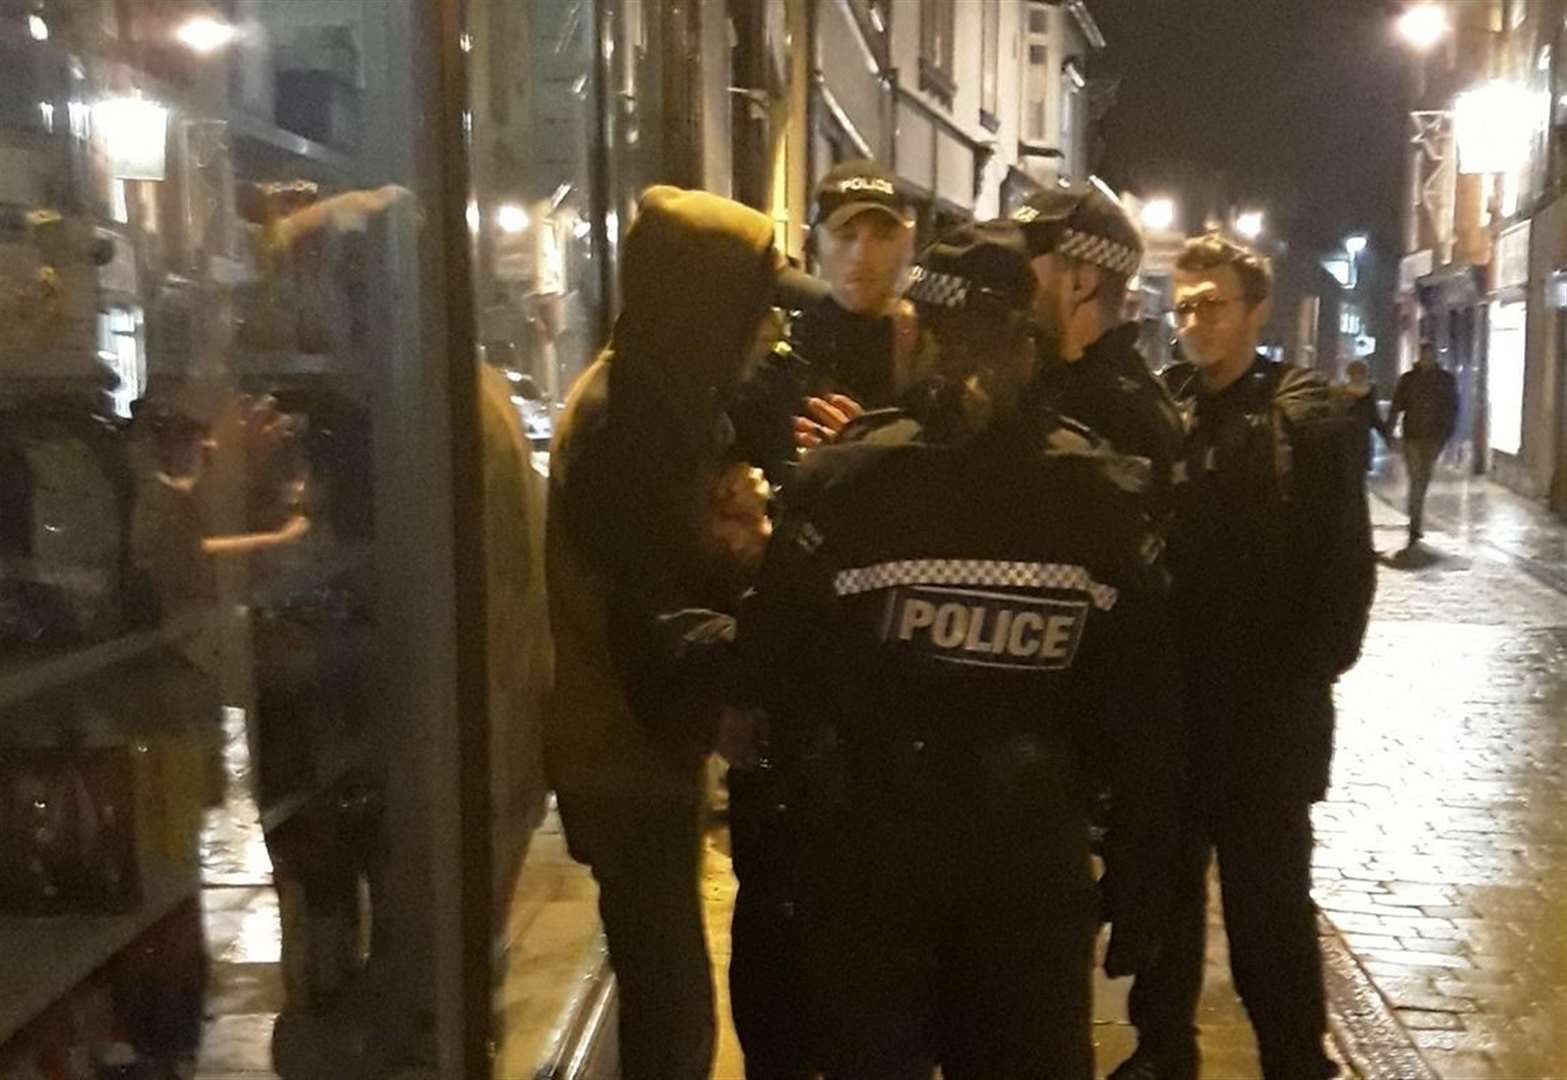 Three residents found to be in possession of drugs after strong police presence in Newark town centre